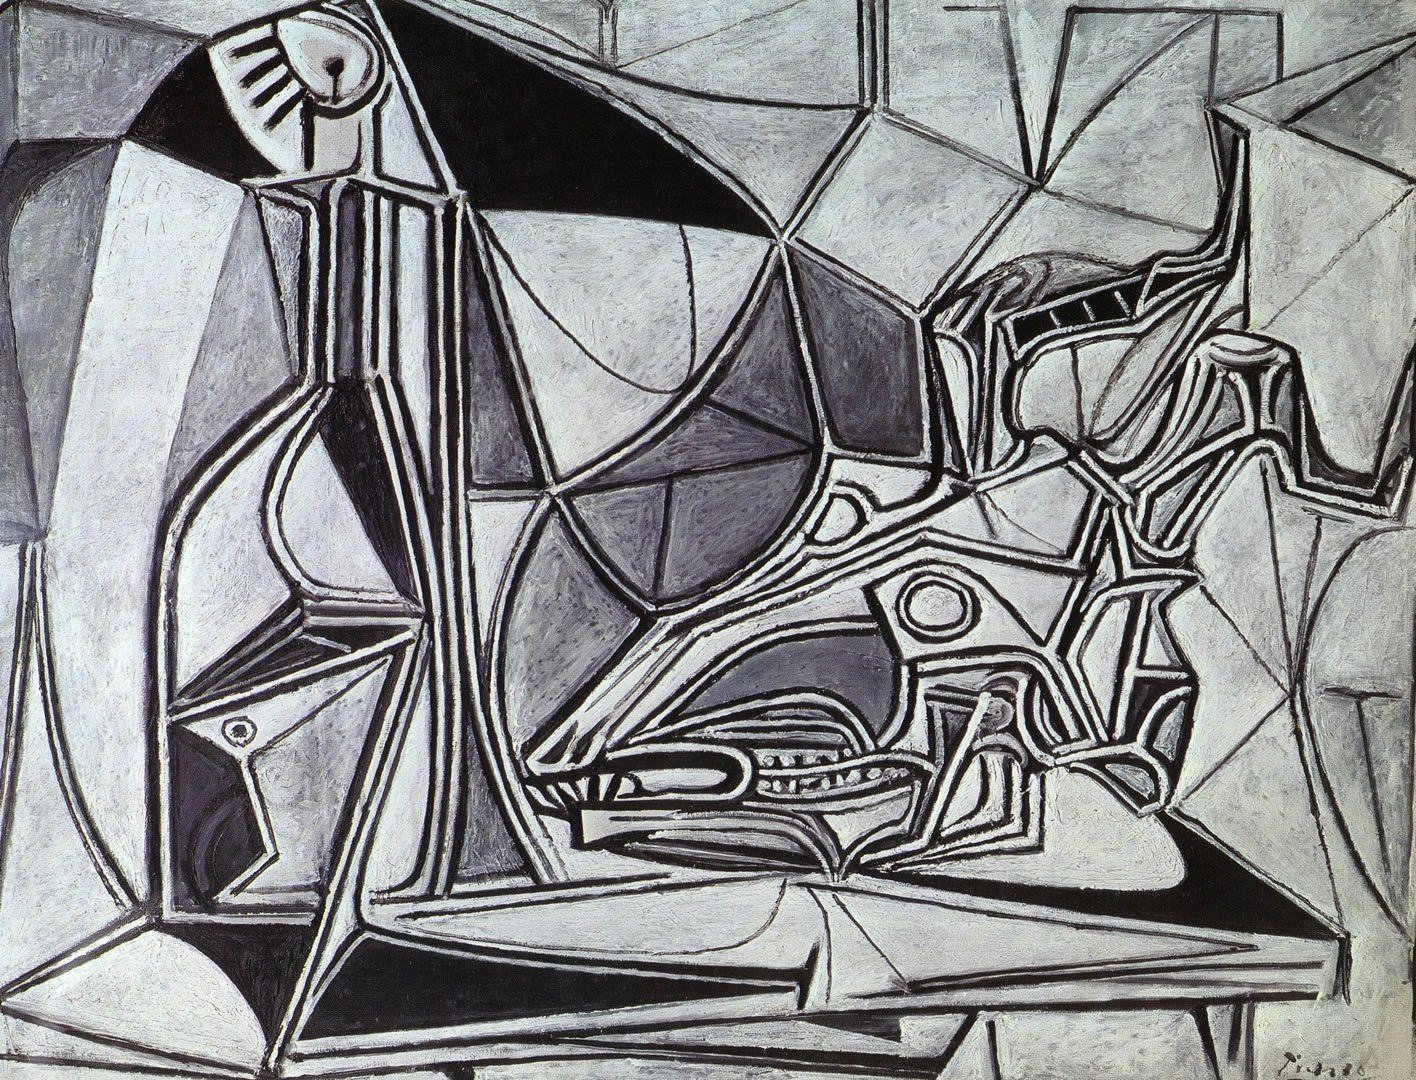 Pablo Picasso Paintings Wallpapers Gallery - page 1